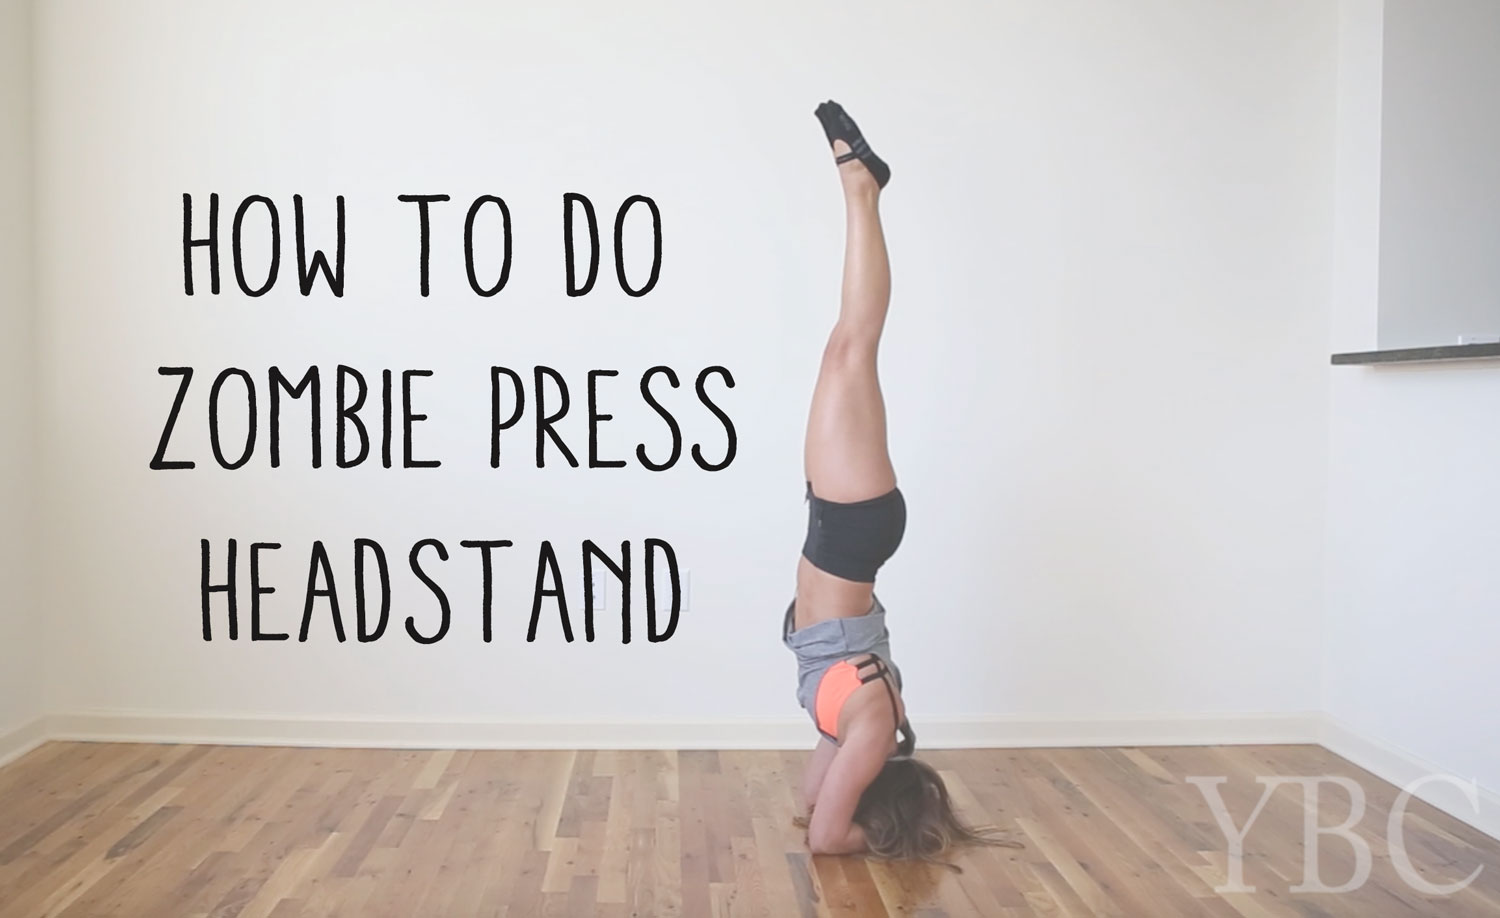 Pin now and learn how to do a zombie press headstand.  Wearing:  lululemon shorts ,  montiel activewear tank ,  onzie bra ,  great soles socks .